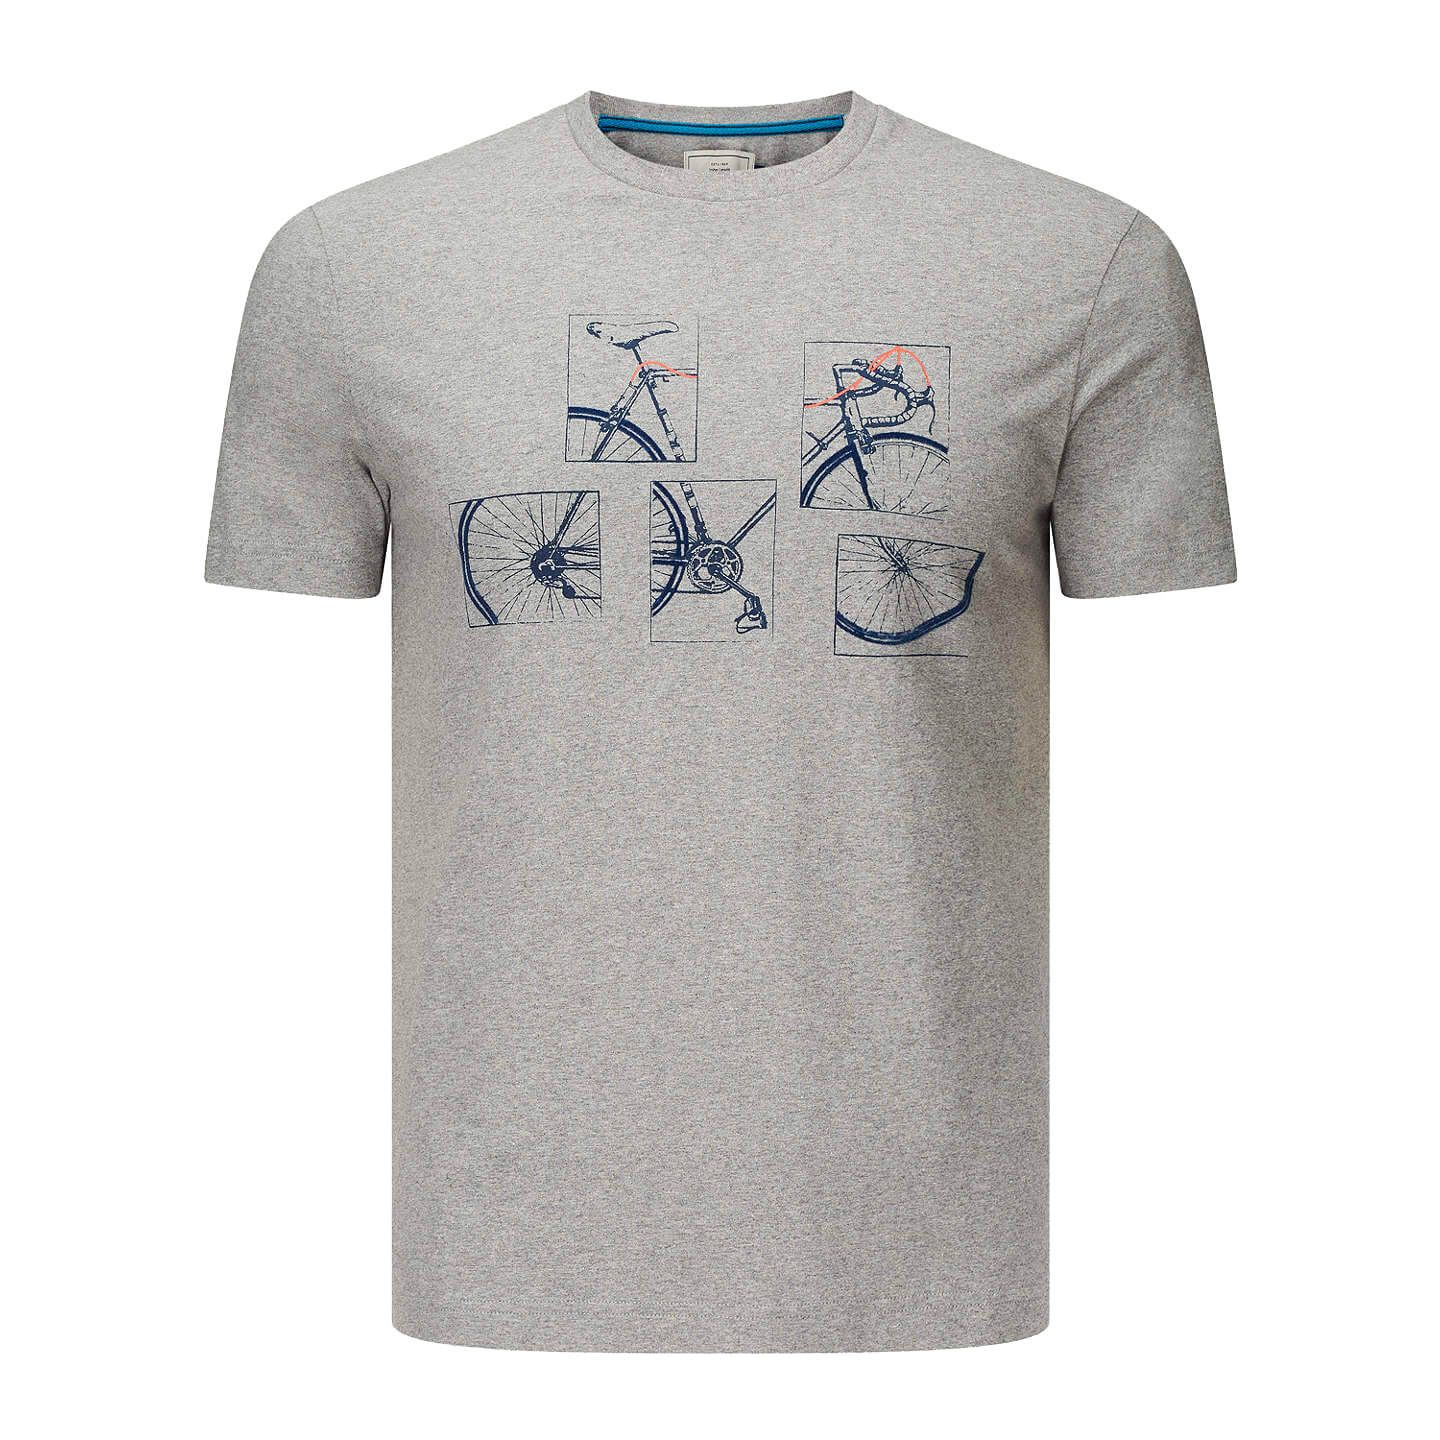 John Lewis Bike Placement Graphic T-Shirt, Grey